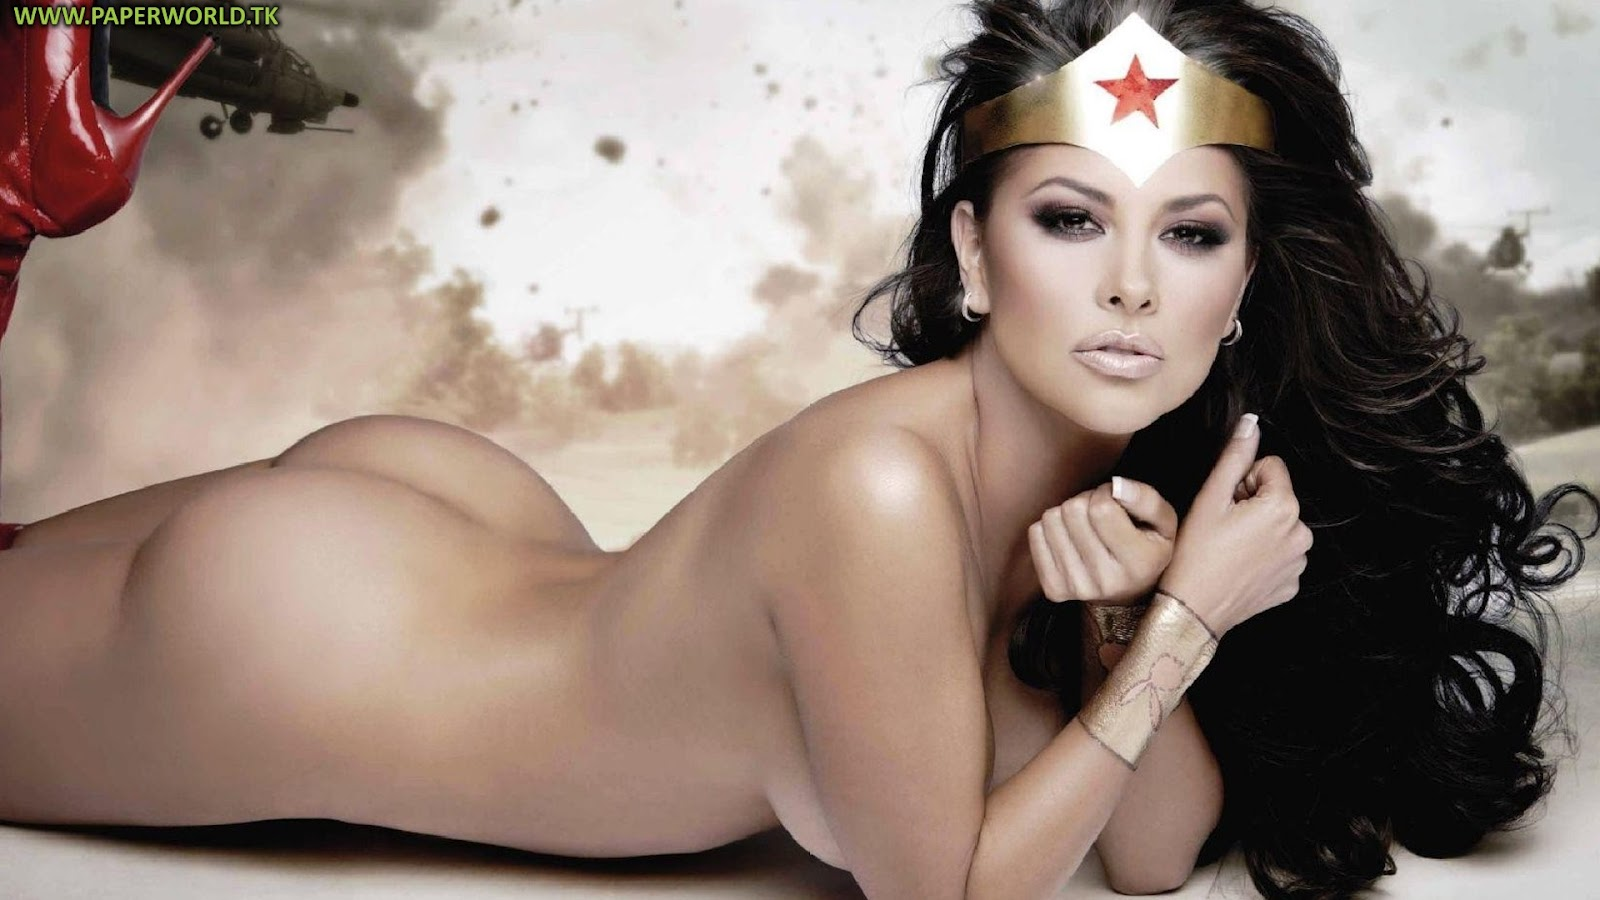 nudes! hot wonder New woman